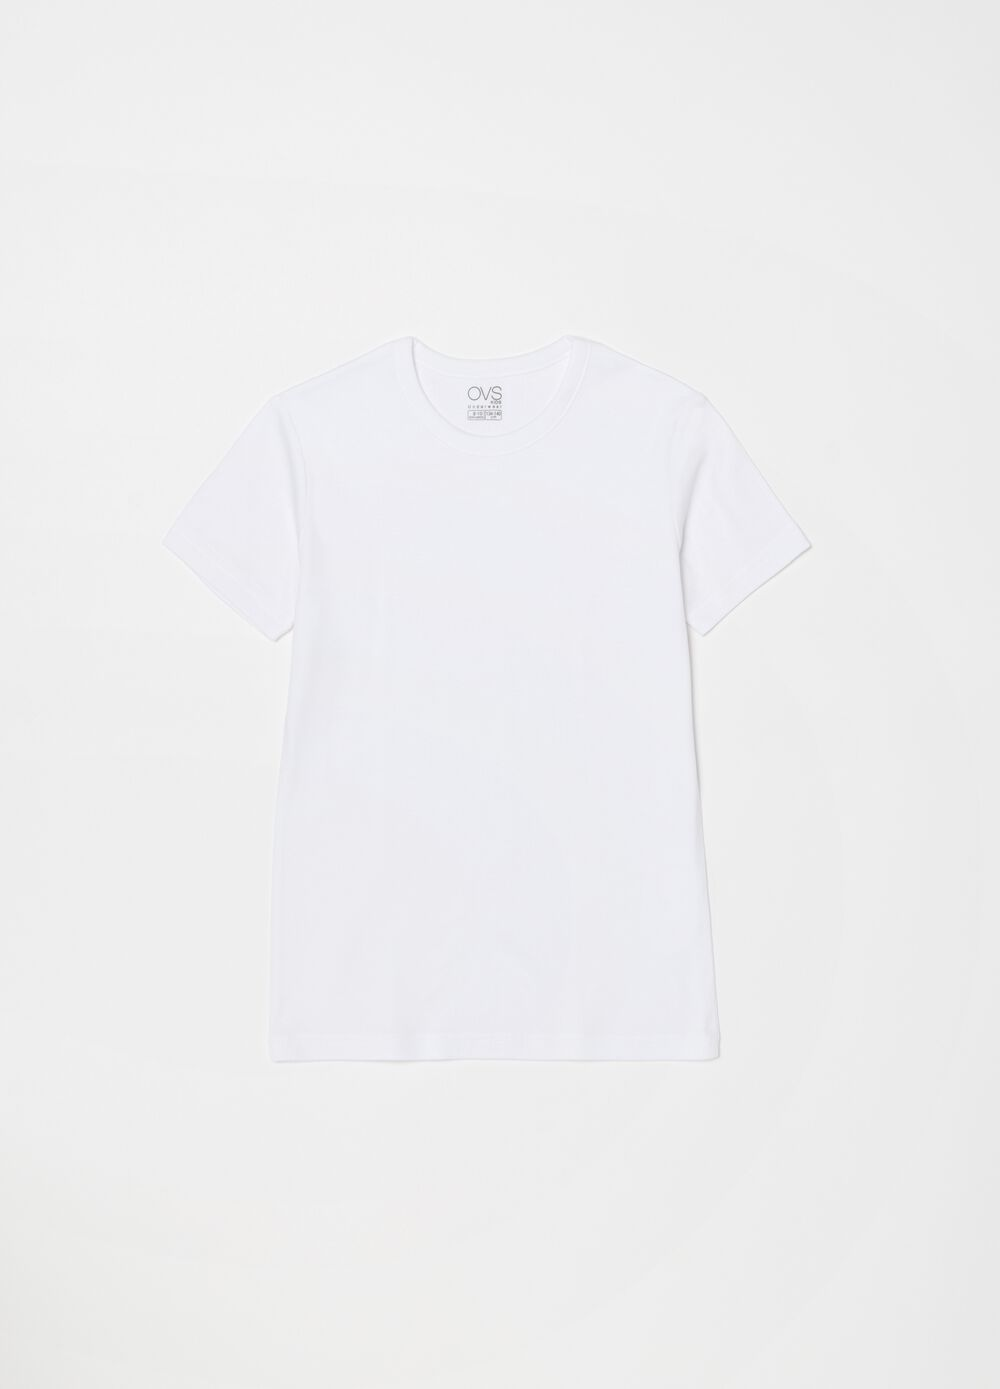 100% organic cotton undershirt with ribbing